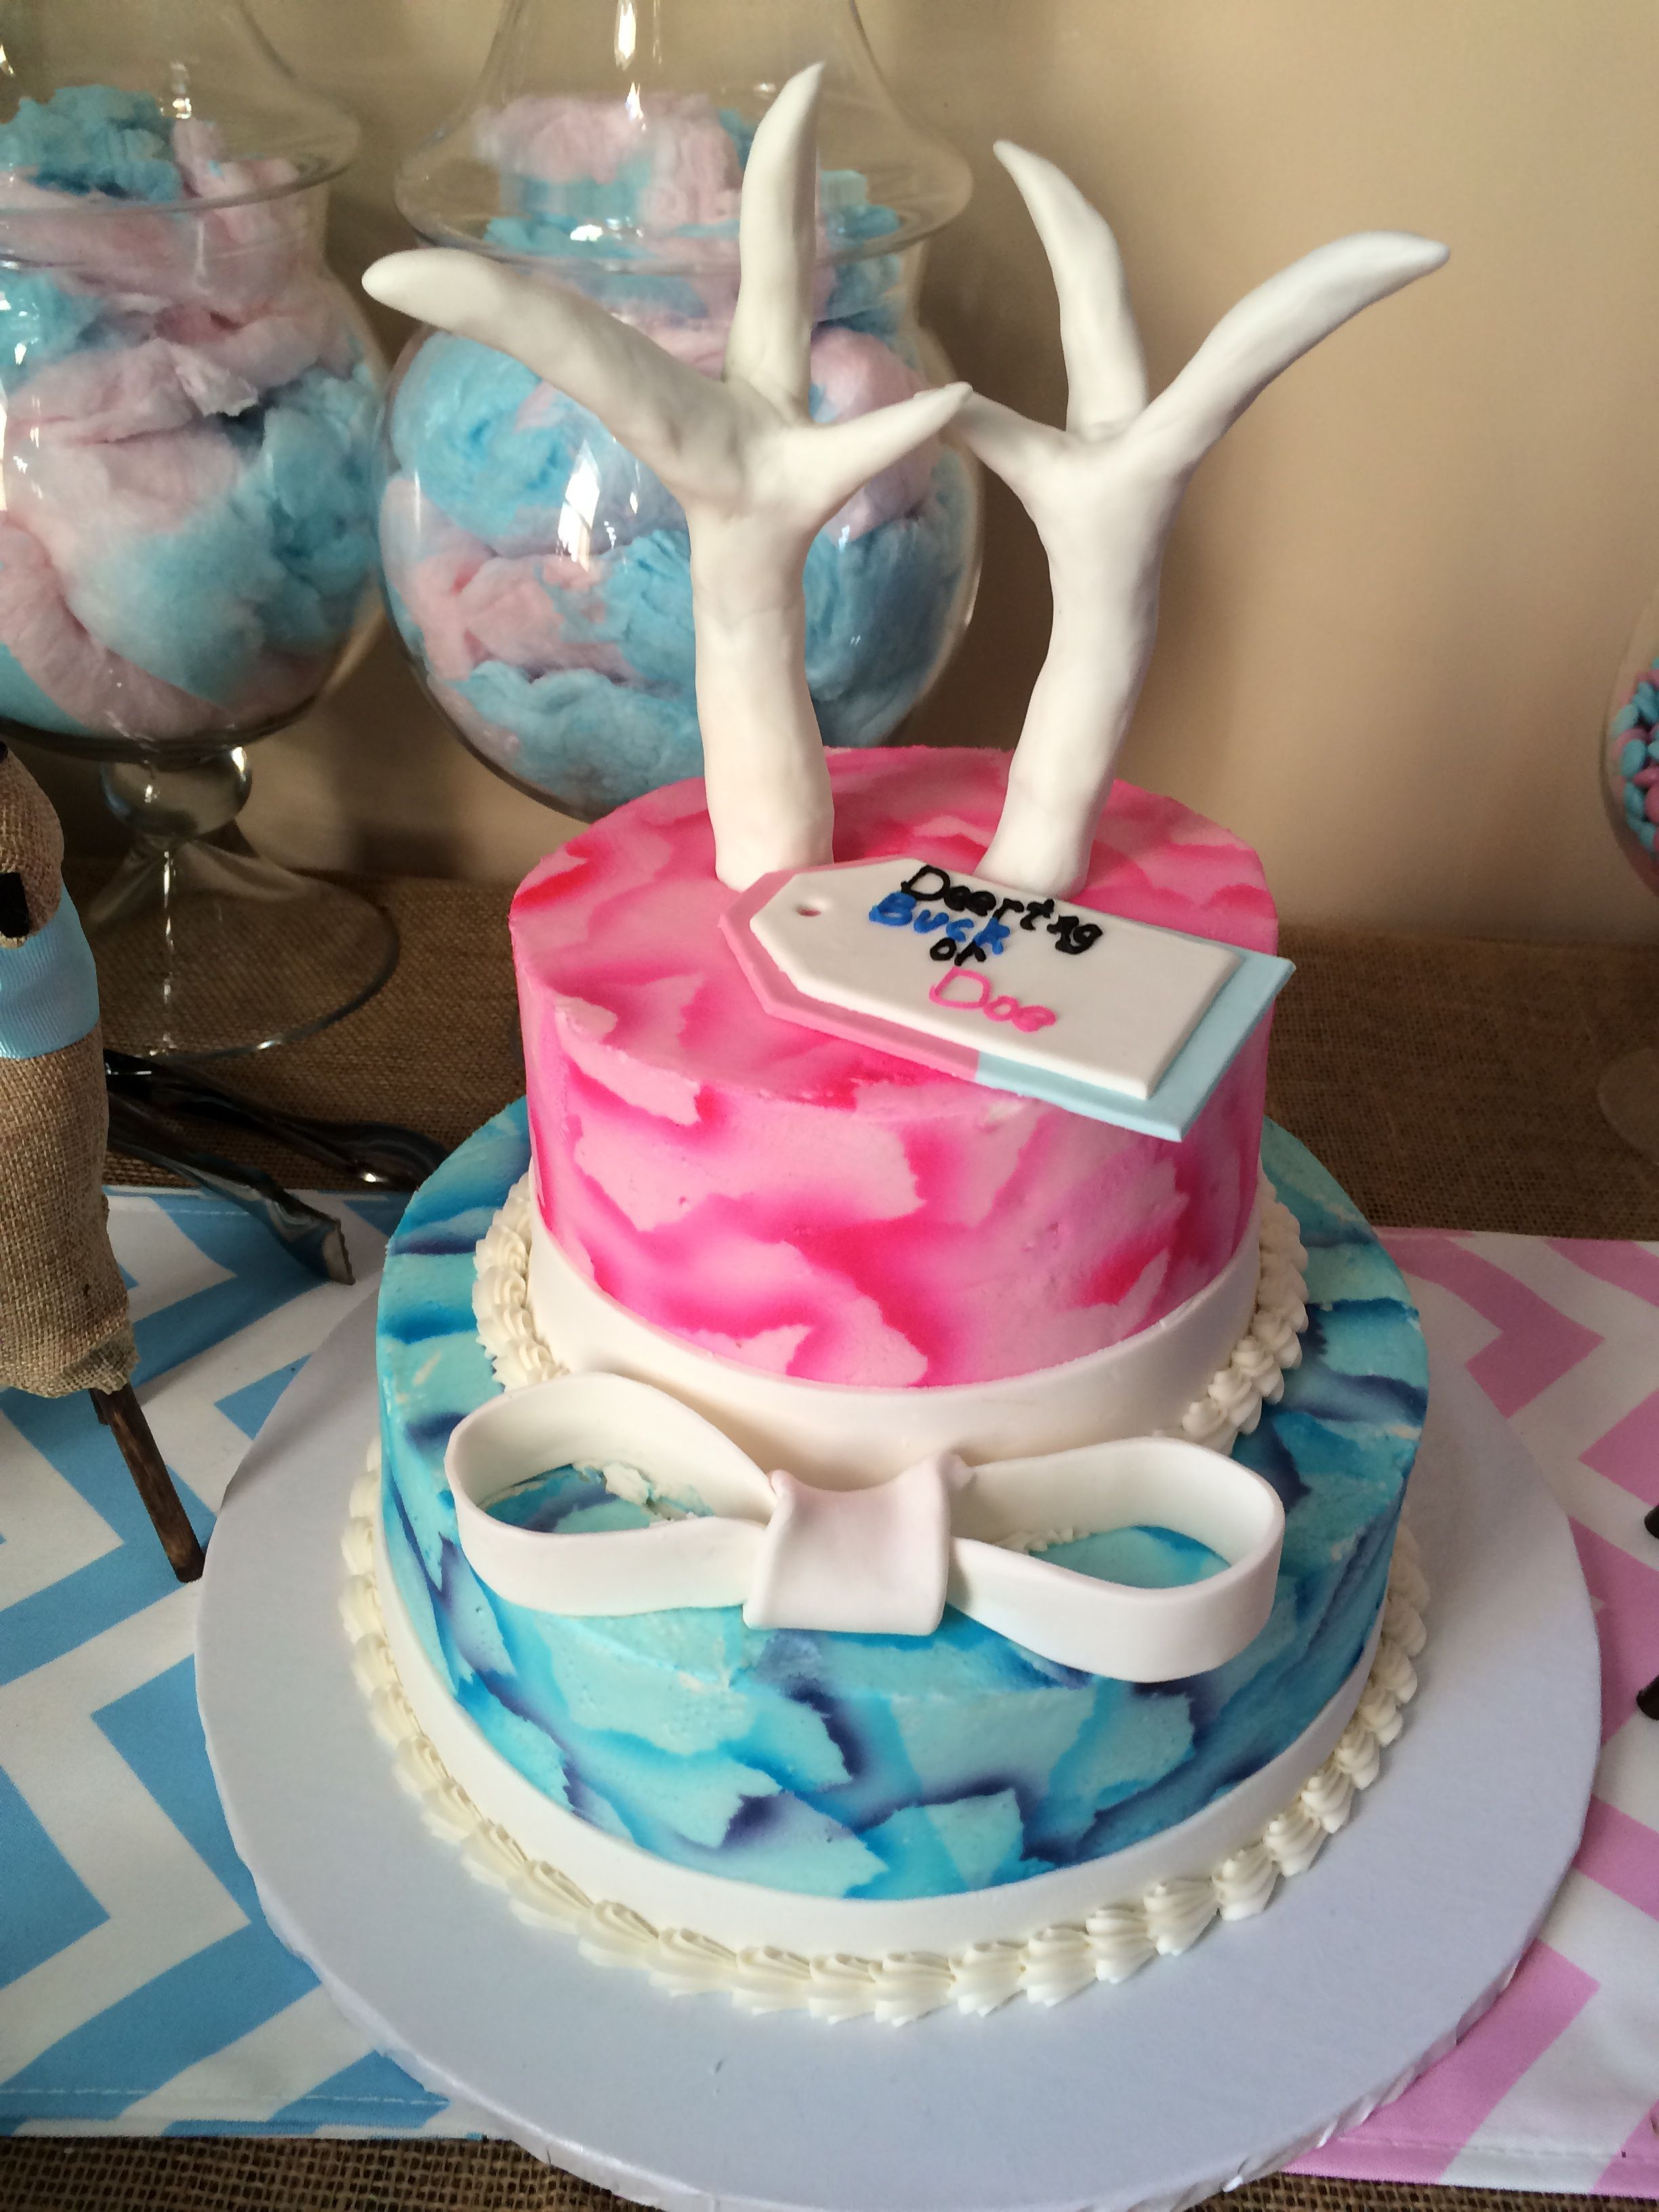 Love this cake Buck or Doe Gender Reveal Party